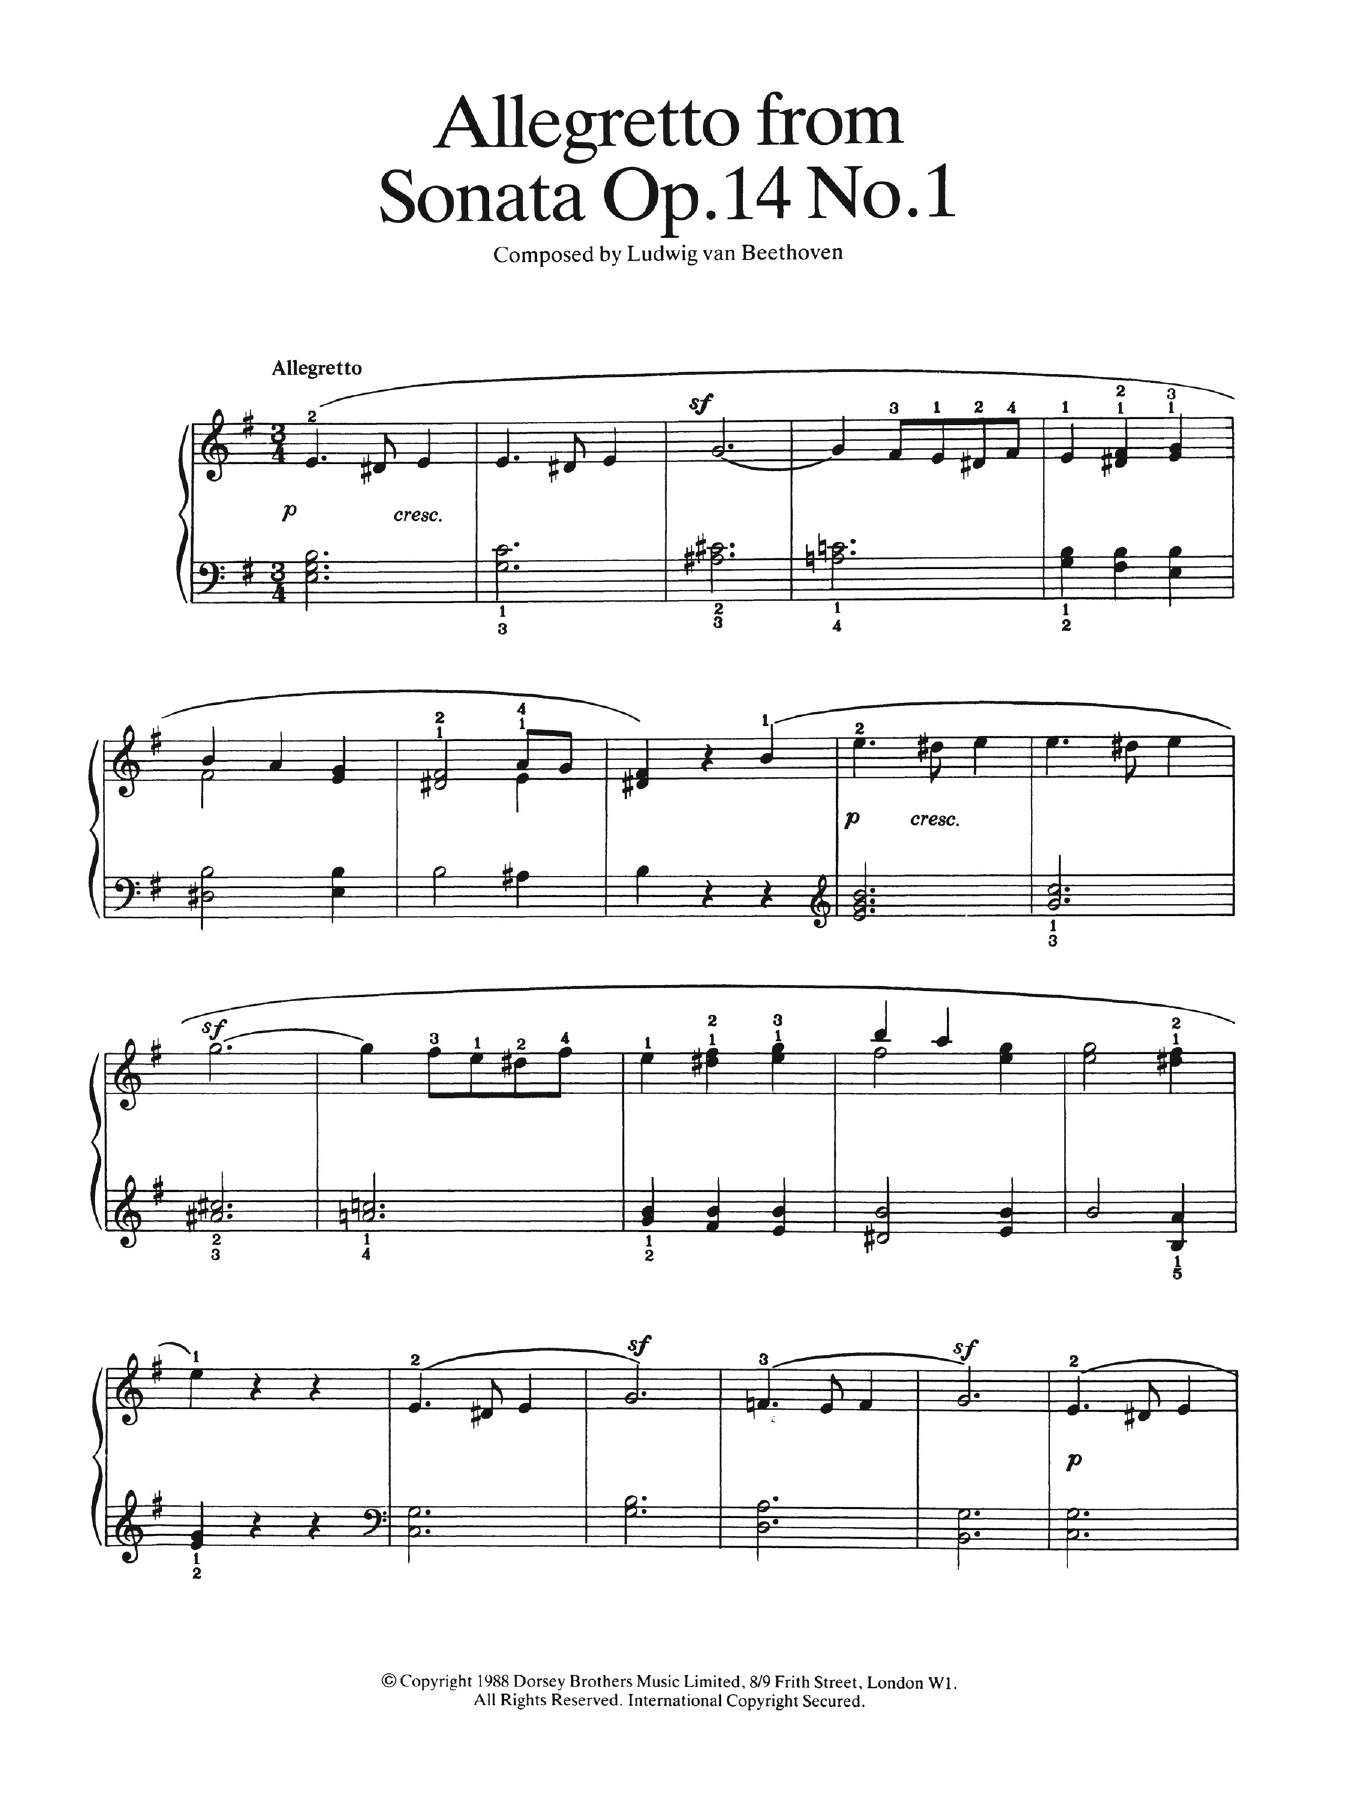 Allegretto from Sonata Op. 14, No. 1 Digitale Noten